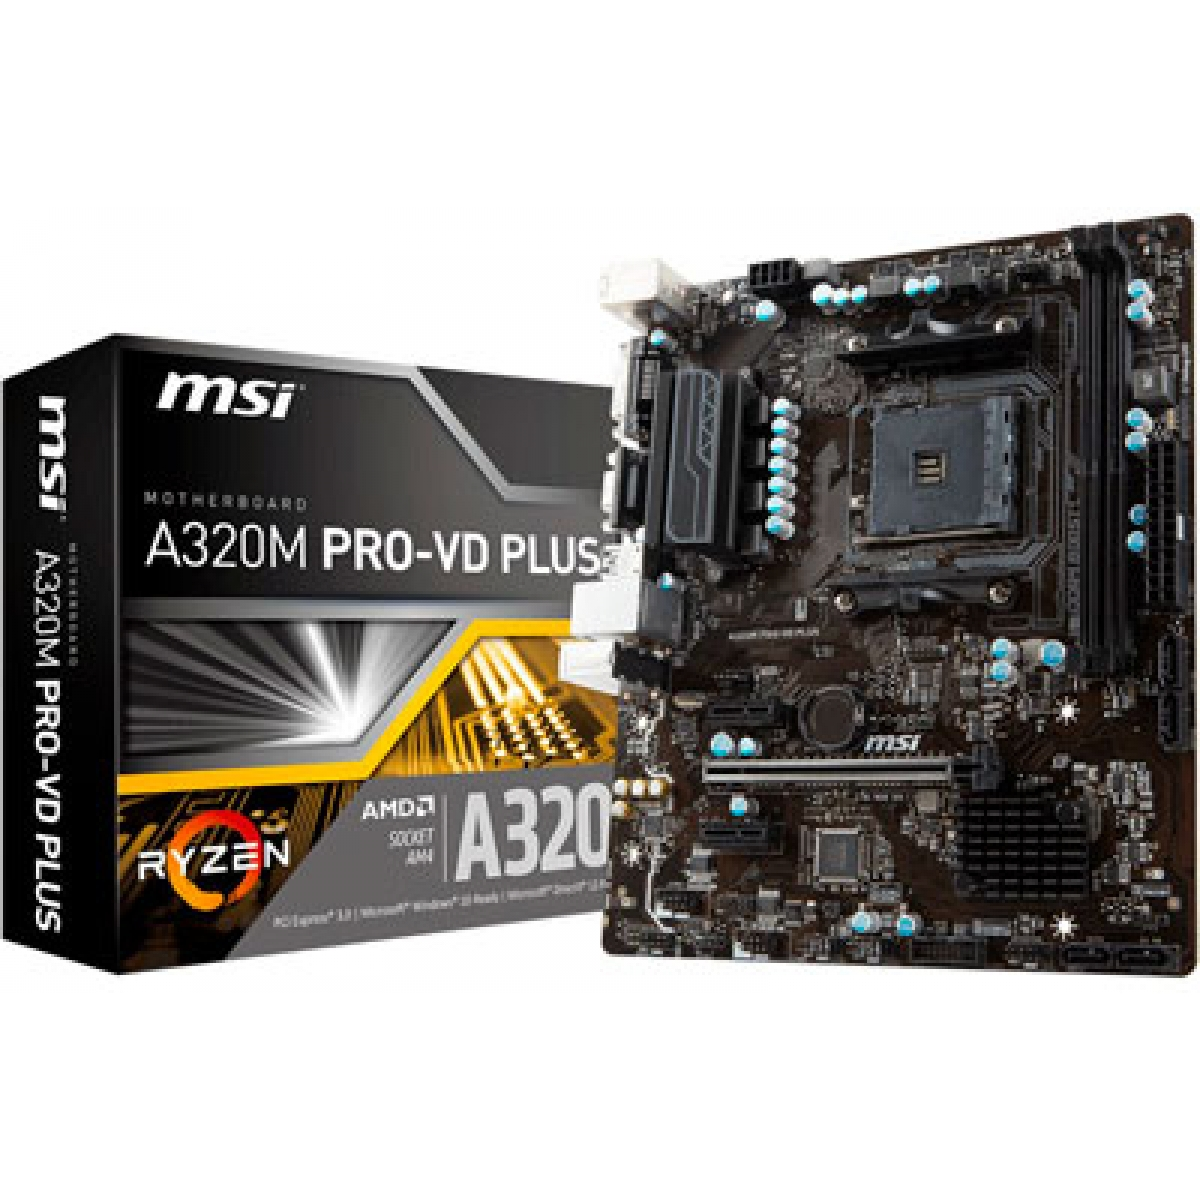 Placa Mãe MSI A320M PRO-VD PLUS, Chipset A320, AMD AM4, mATX, DDR4